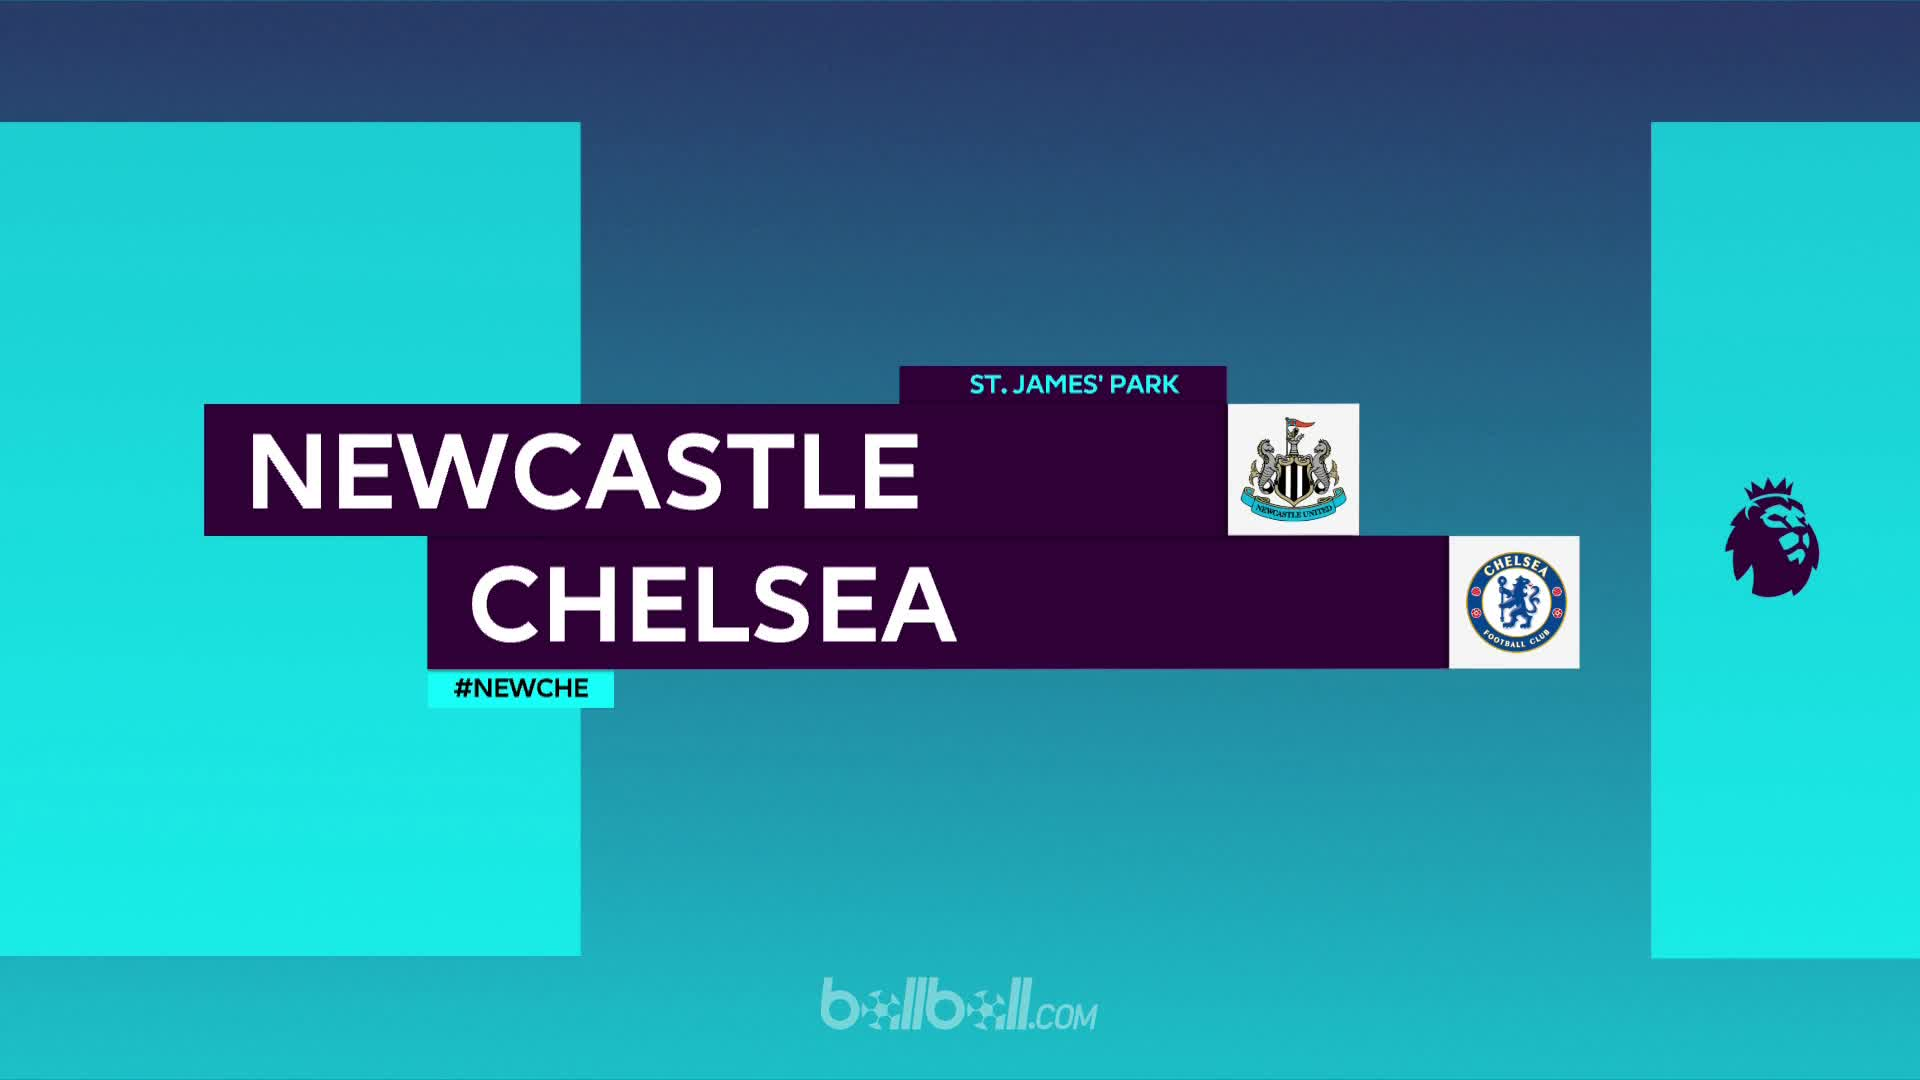 Newcastle United 3 - 0 Chelsea